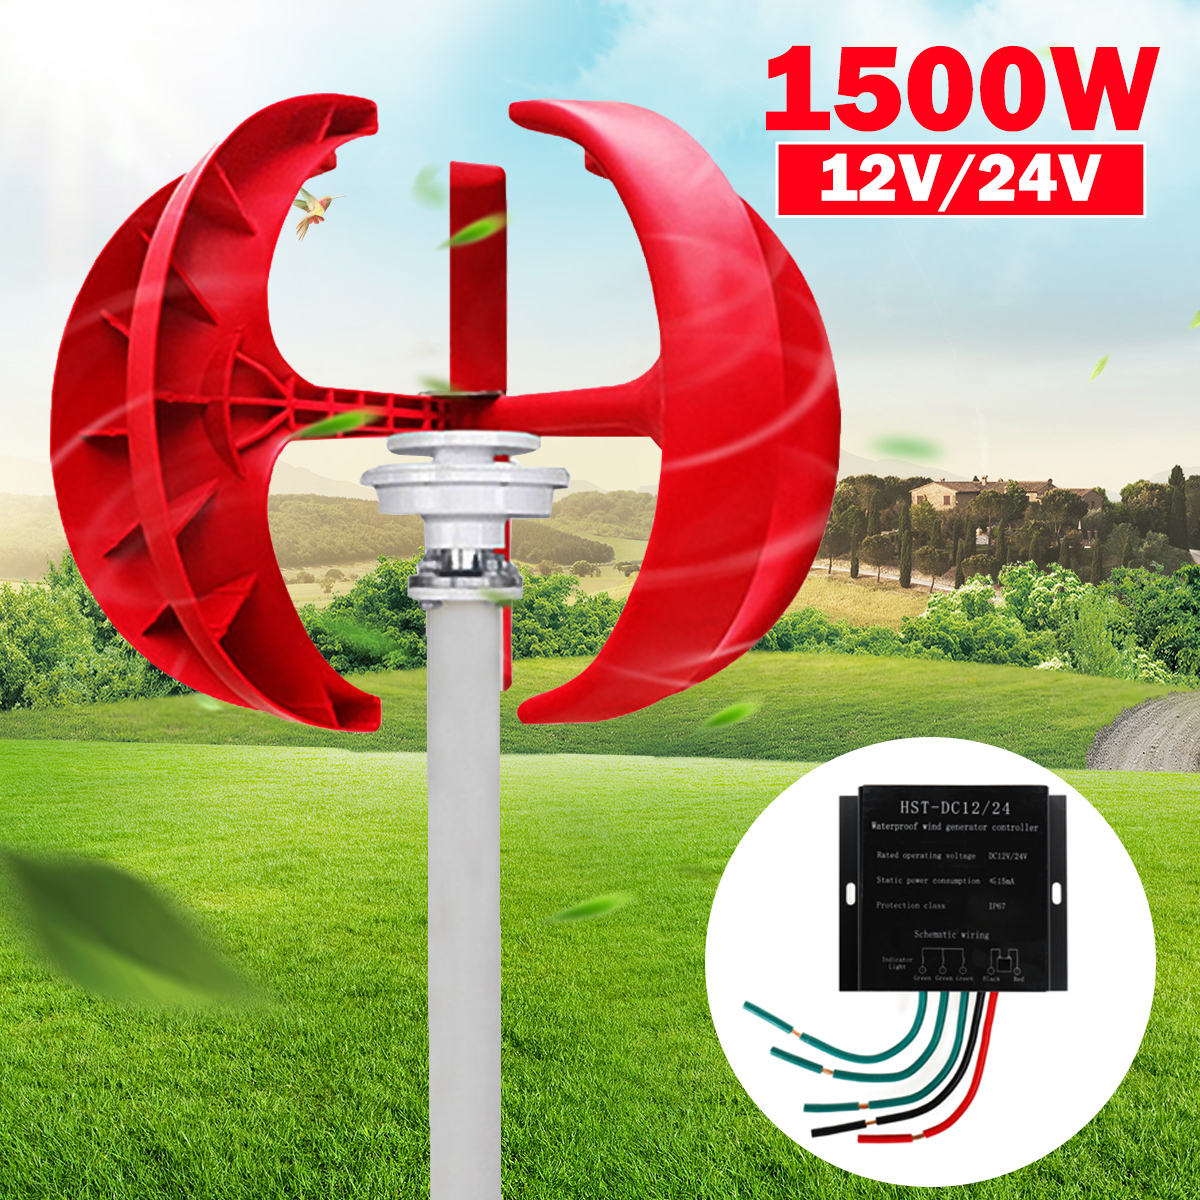 1500W Wind Turbines Generator +Controller 12V 24V 5 Blades Lantern Vertical Axis Permanent Magnet Generator for Home Streetlight